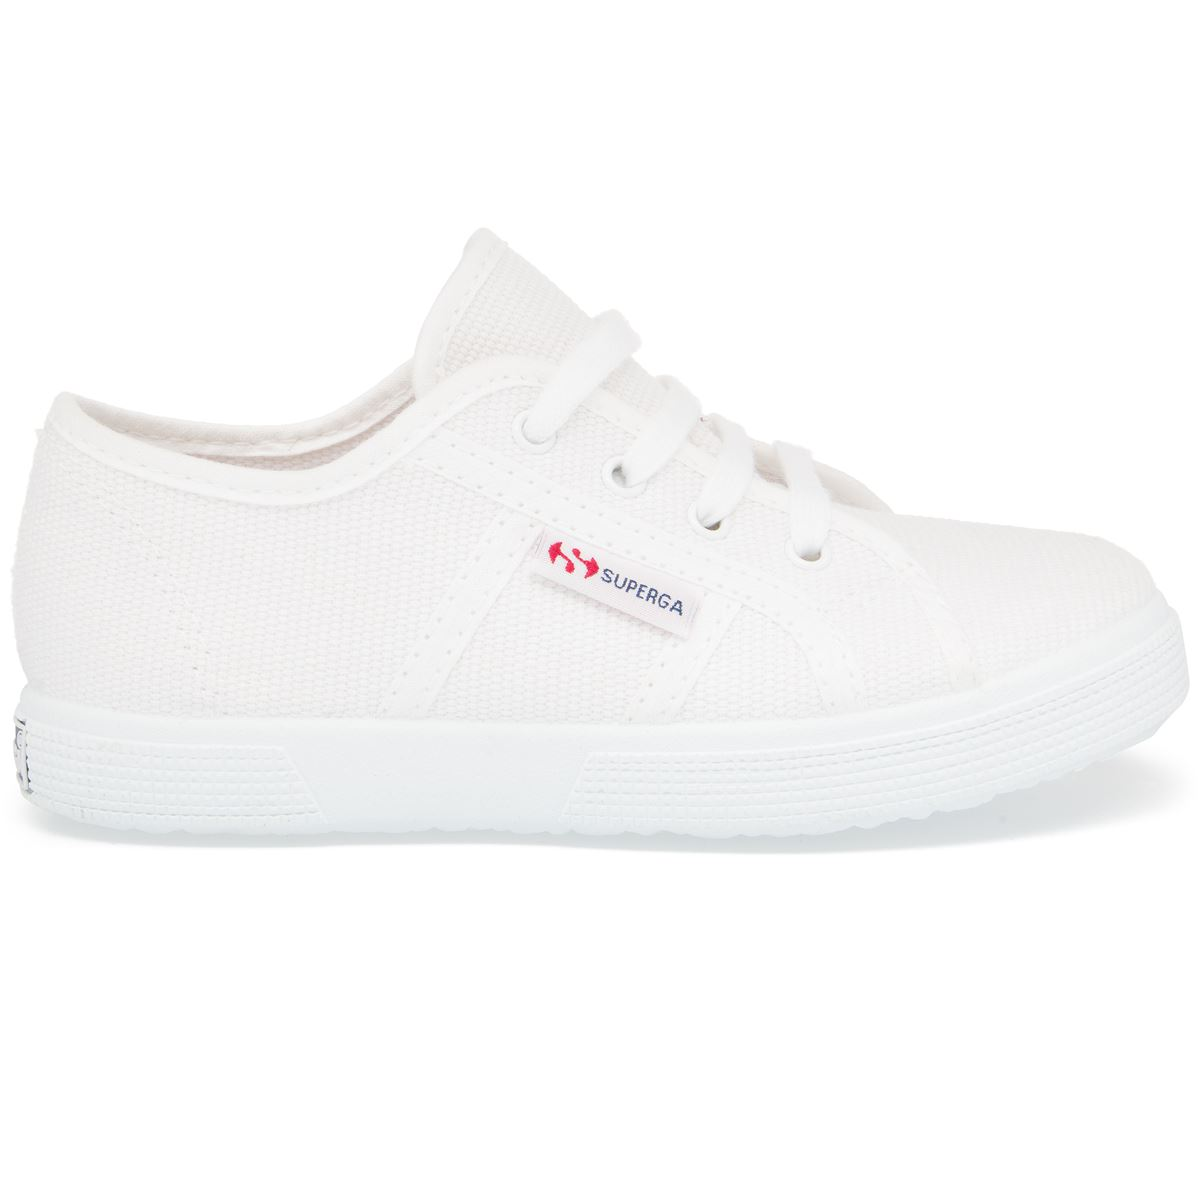 Italian Le Superga Superga for kid men and women-S00GL60